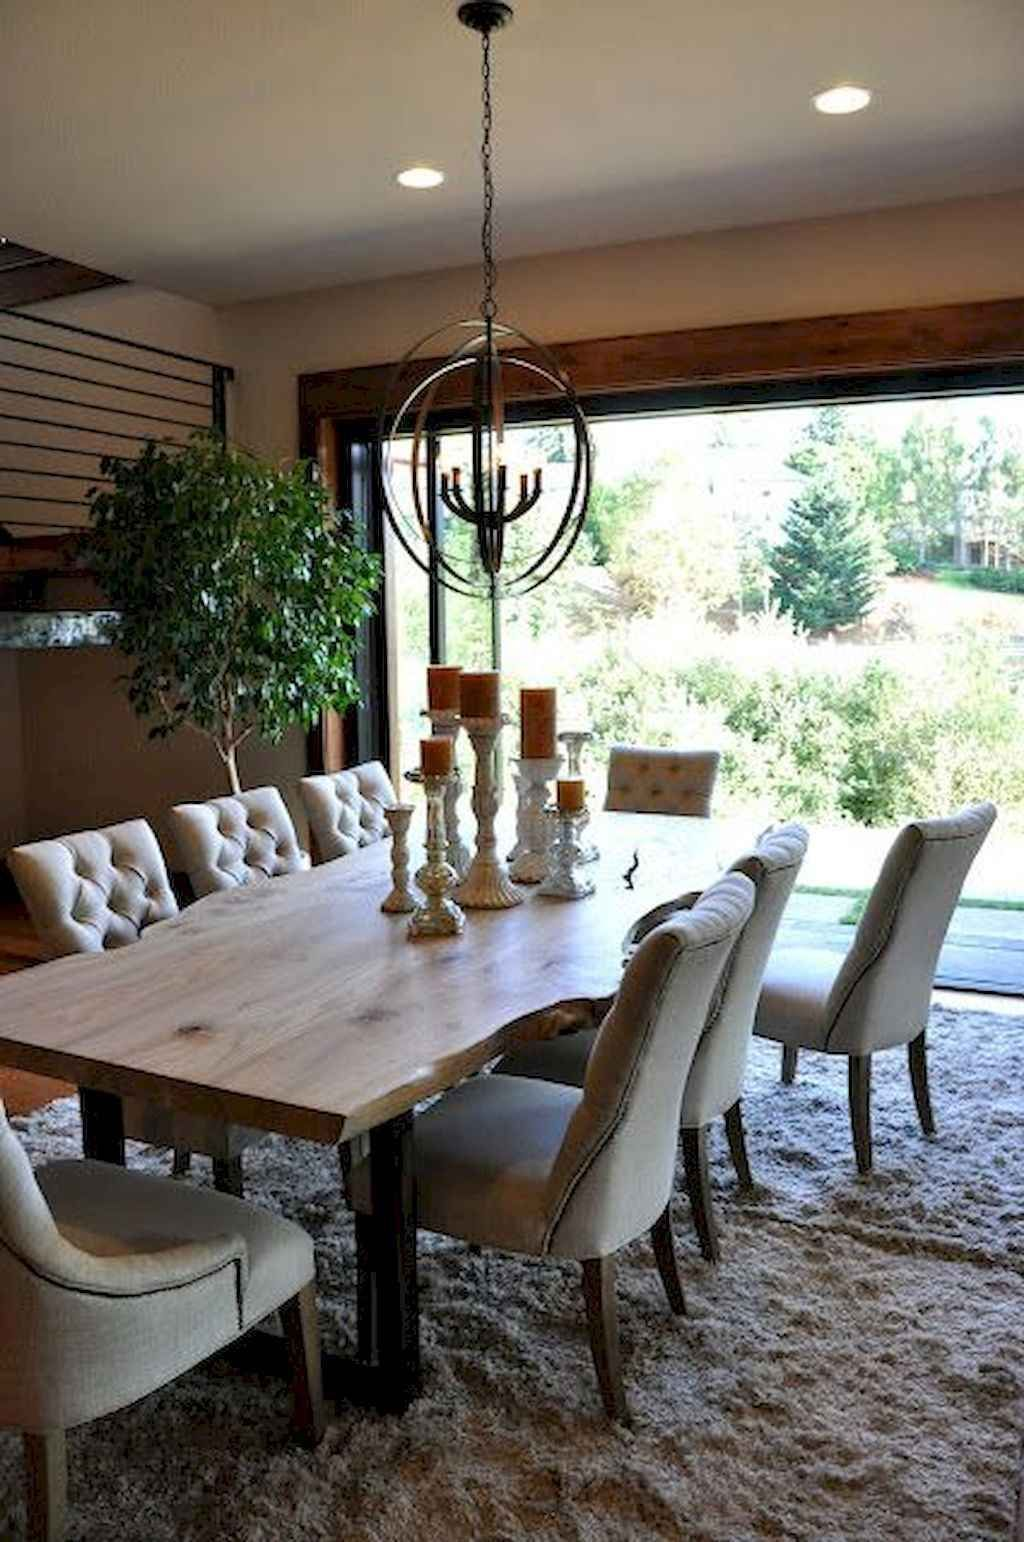 Popular Rustic Farmhouse Style Ideas For Dining Room Decor 11